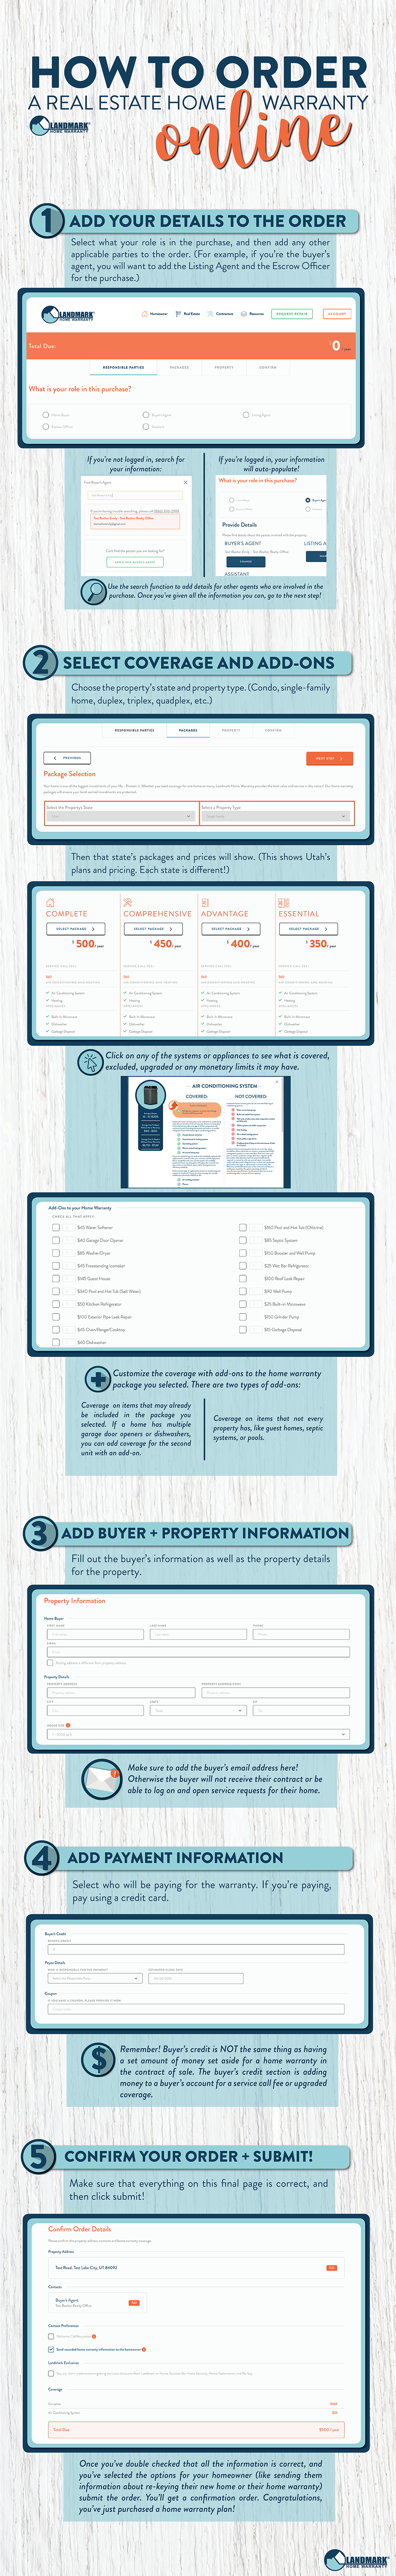 Full infographic on how to order a home warranty plan for real estate.